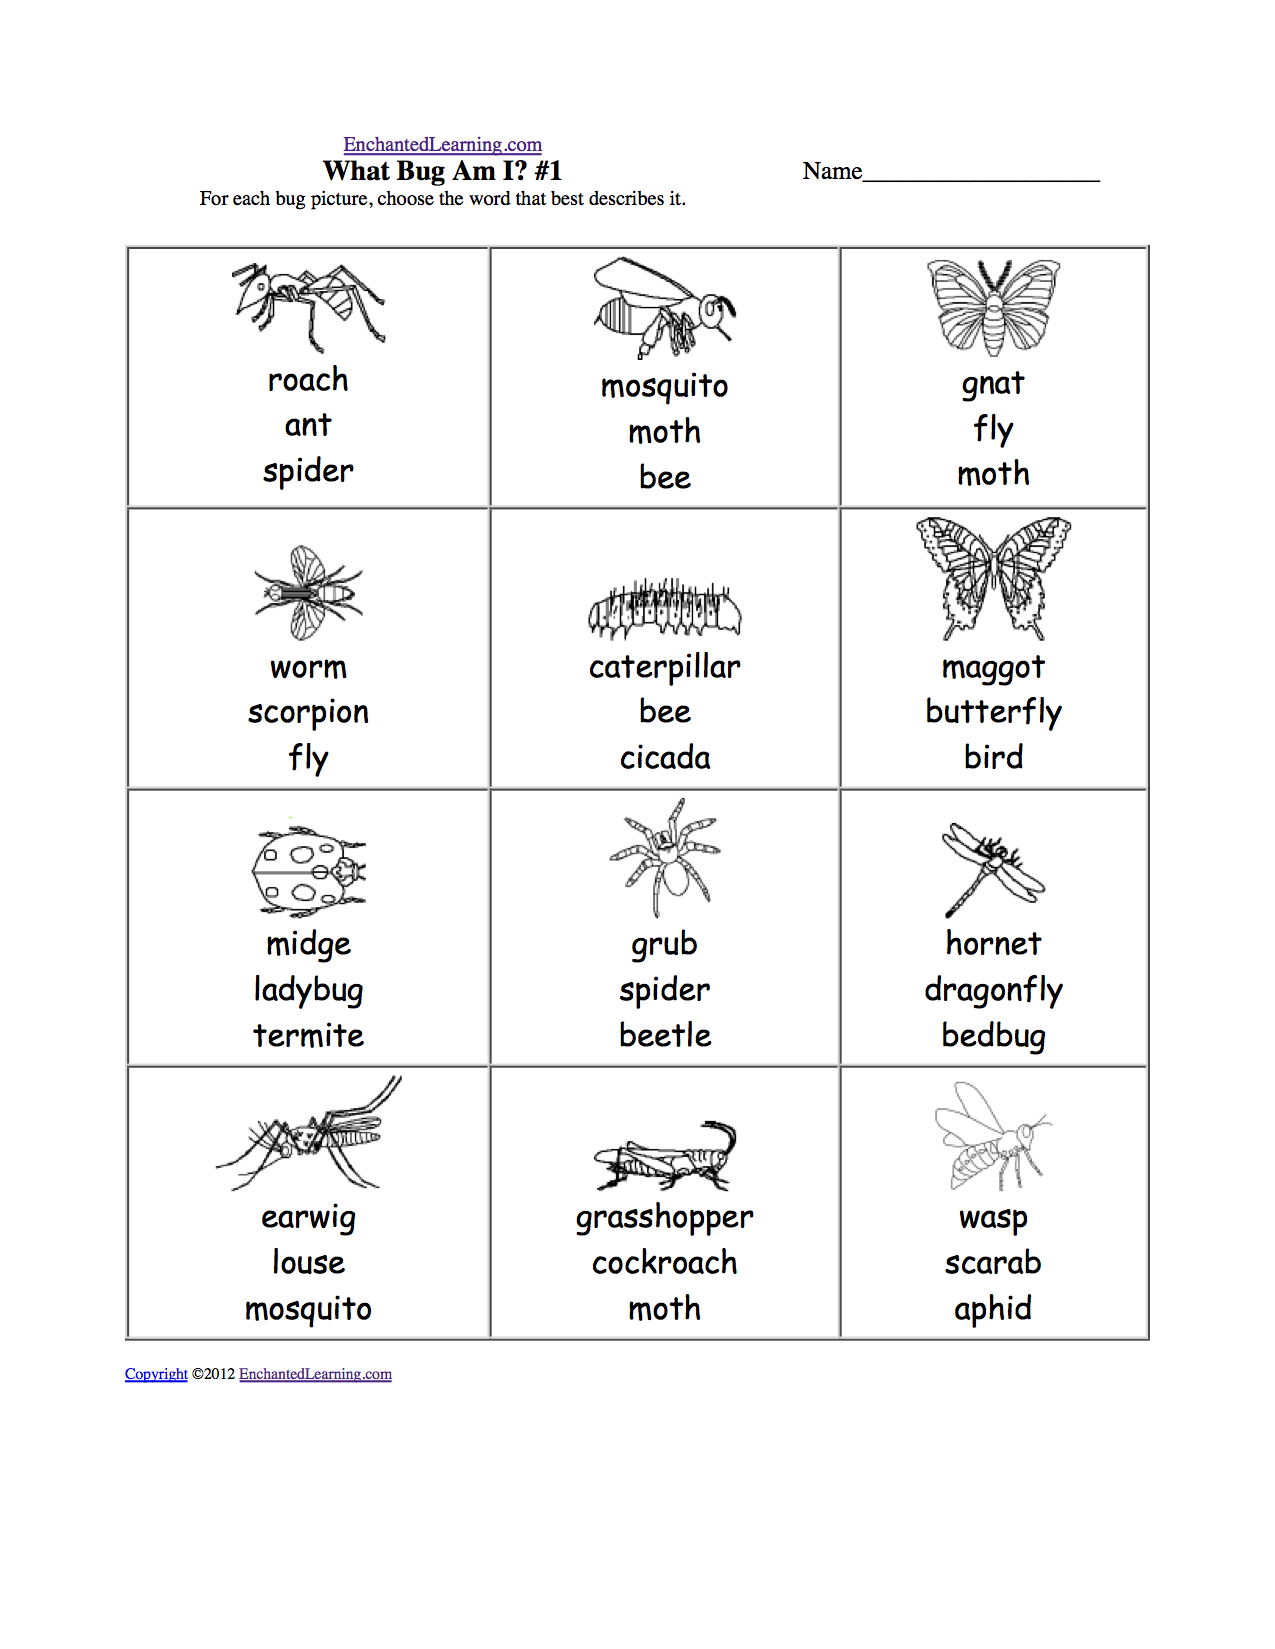 Worksheet Free Insect Worksheets insects at enchantedlearning com